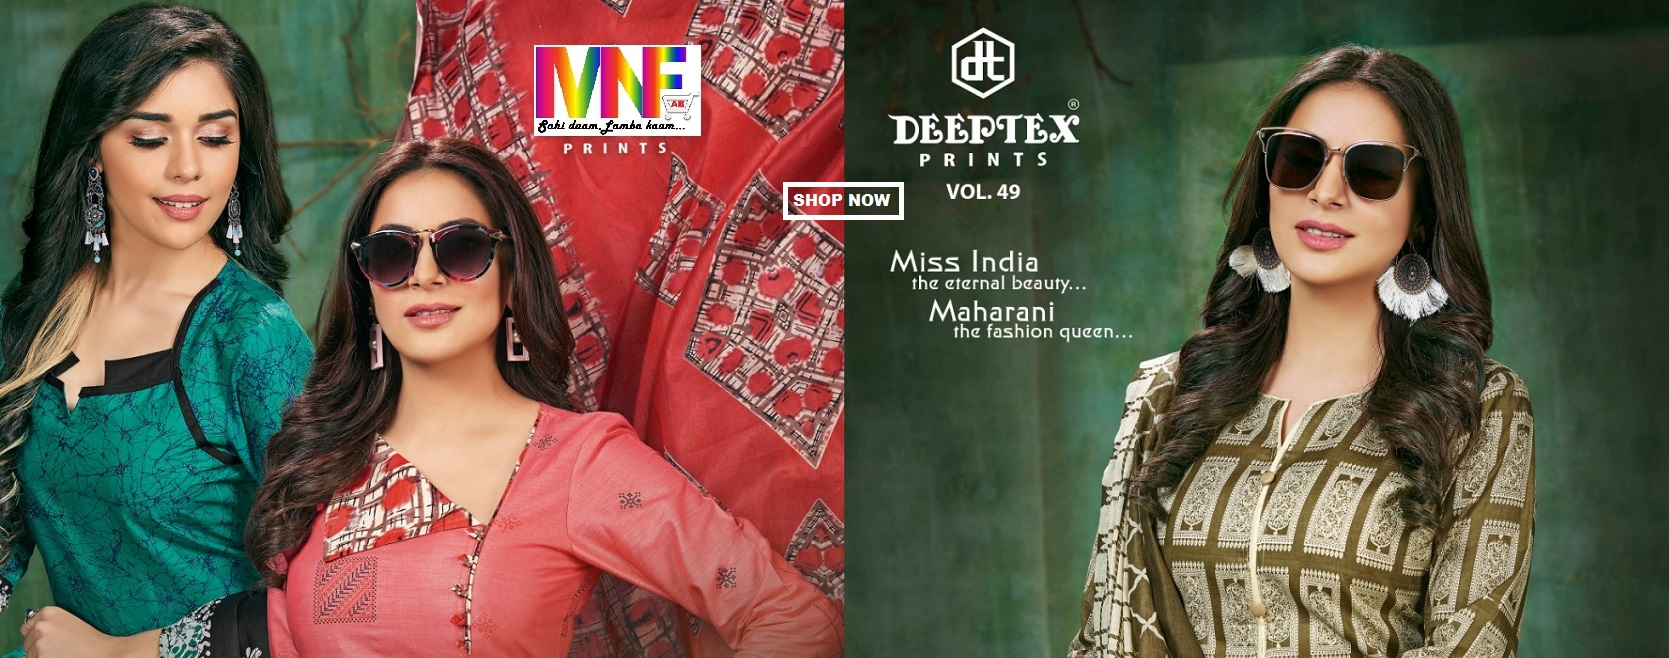 https://www.maanarayanifashion.com/wp-content/uploads/2019/04/deeptex-miss-india-vol-49-1-Copy-1.jpg